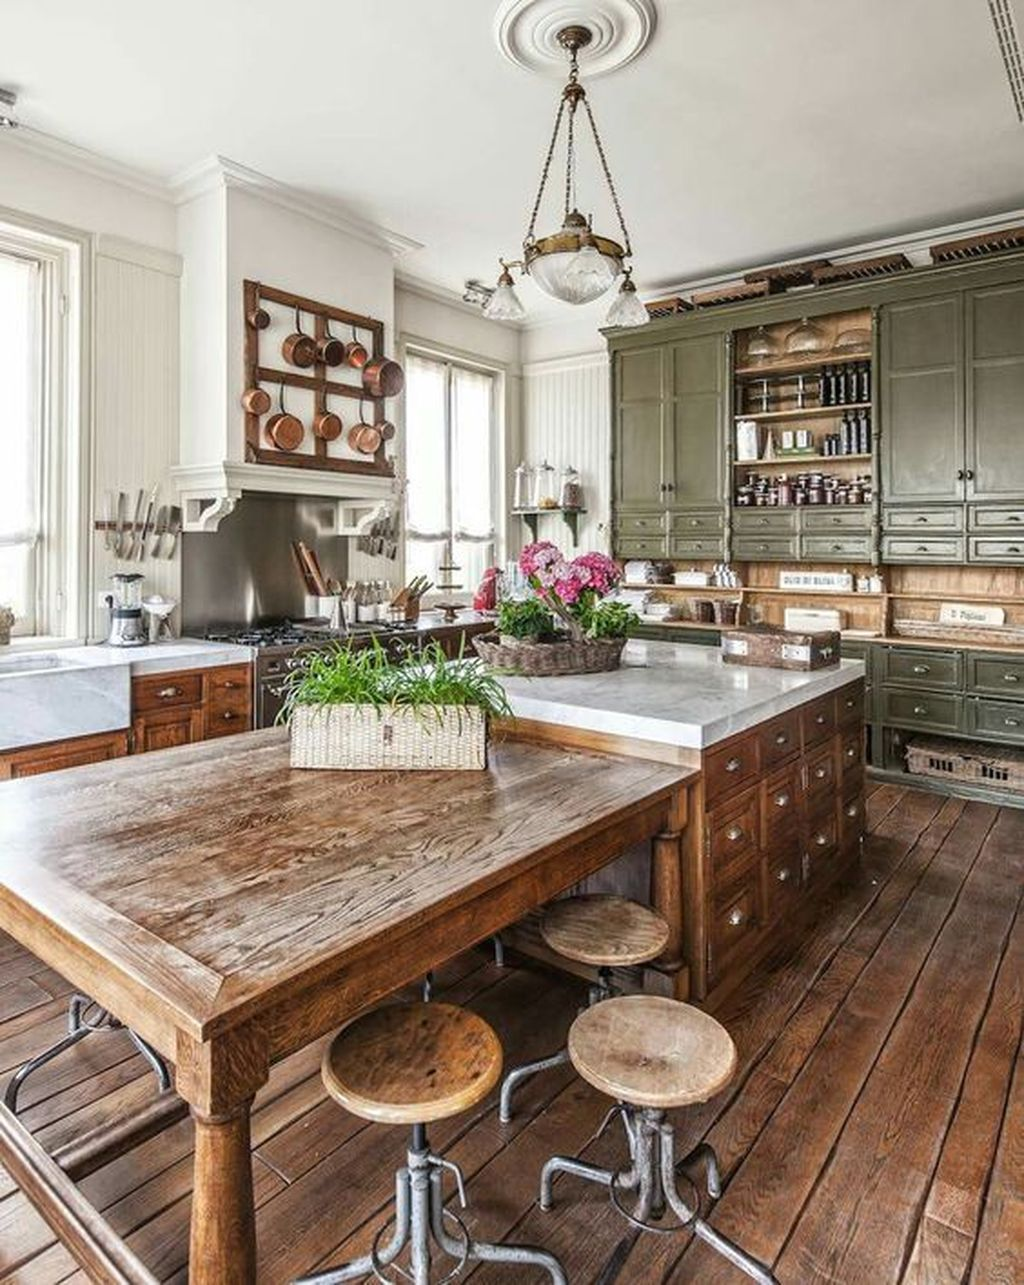 French Country Kitchen Decor Decor Around The World In 2020 Rustic Kitchen Stylish Kitchen Decor Country Kitchen Designs